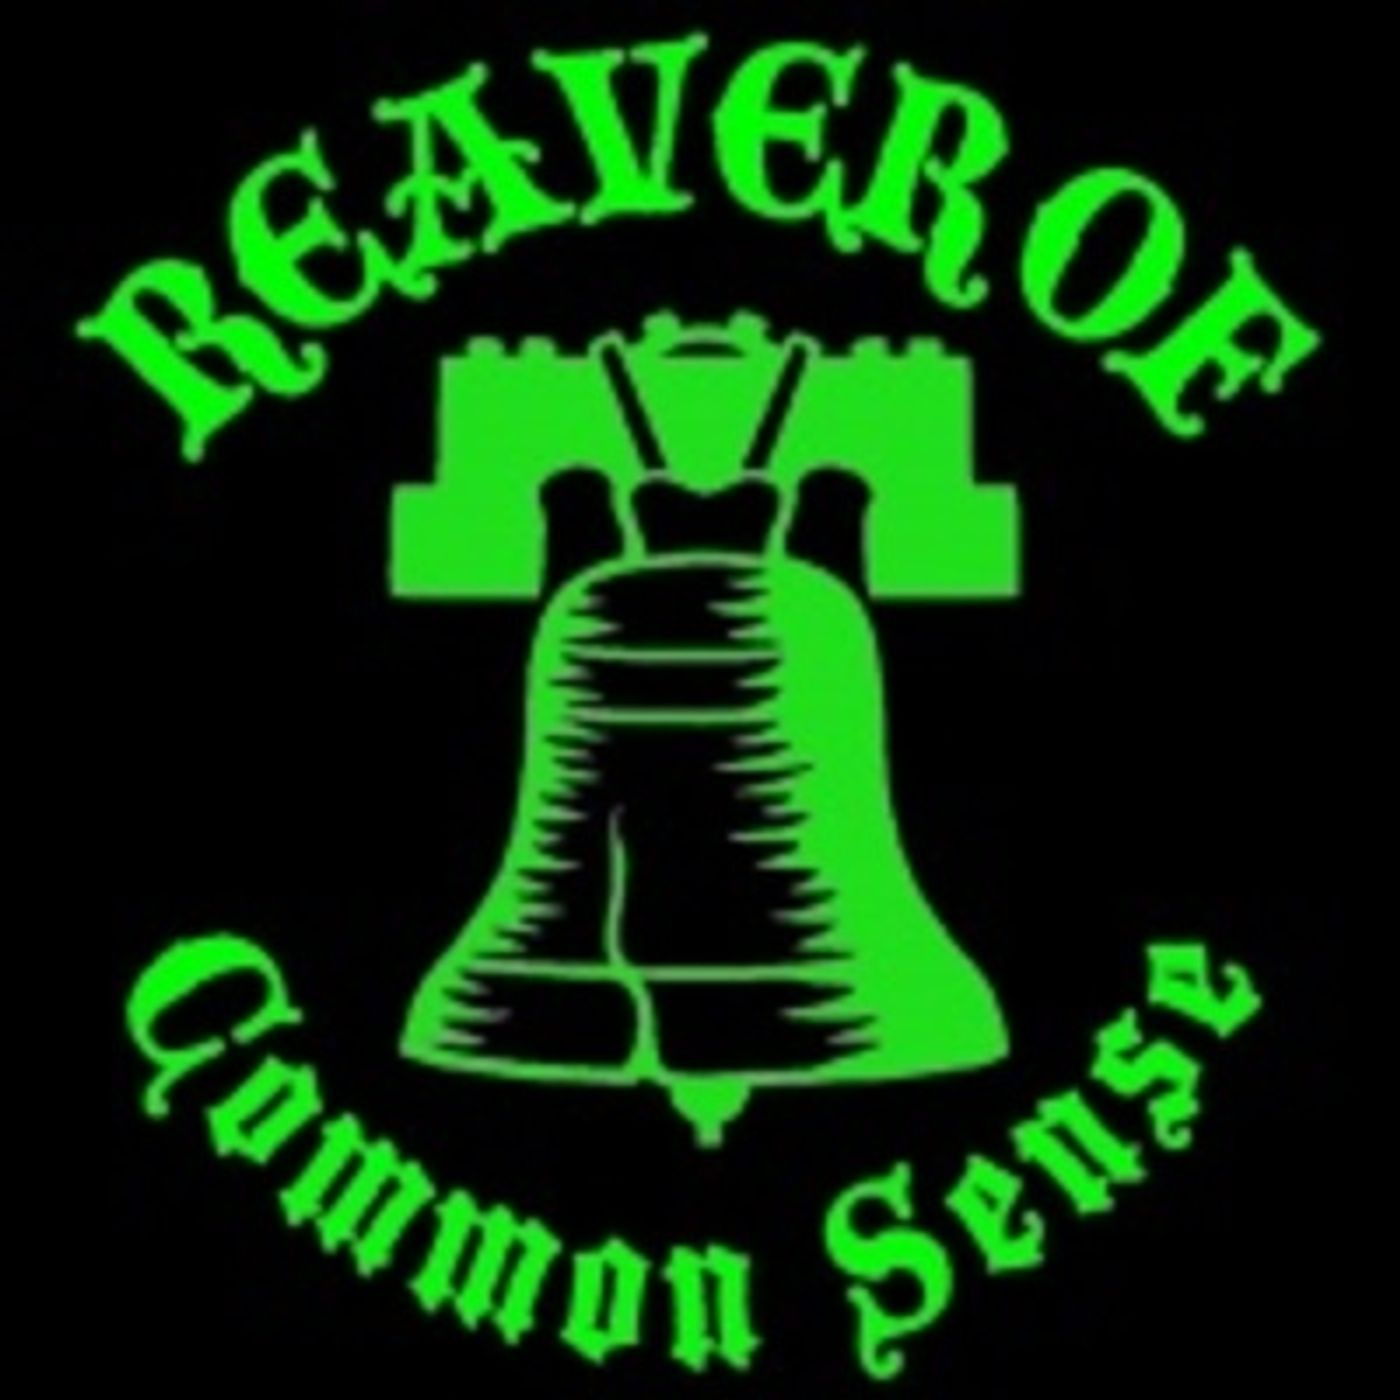 Reaver of Common Sense 01-29-2018